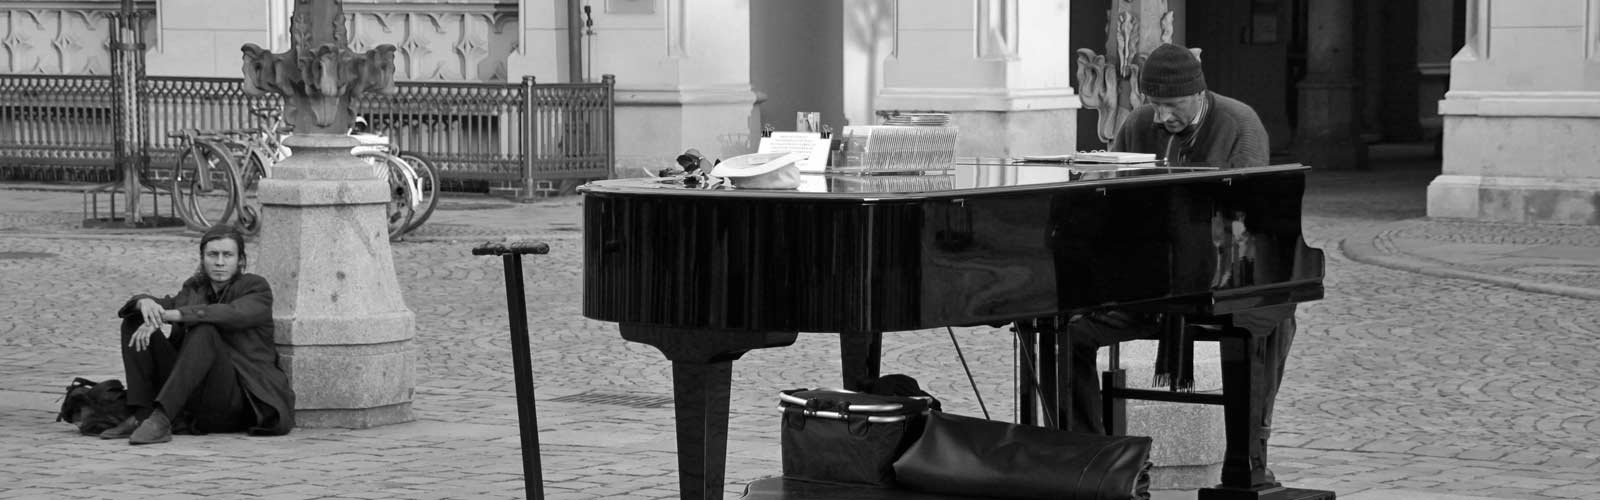 cours-de-piano-Angers-4